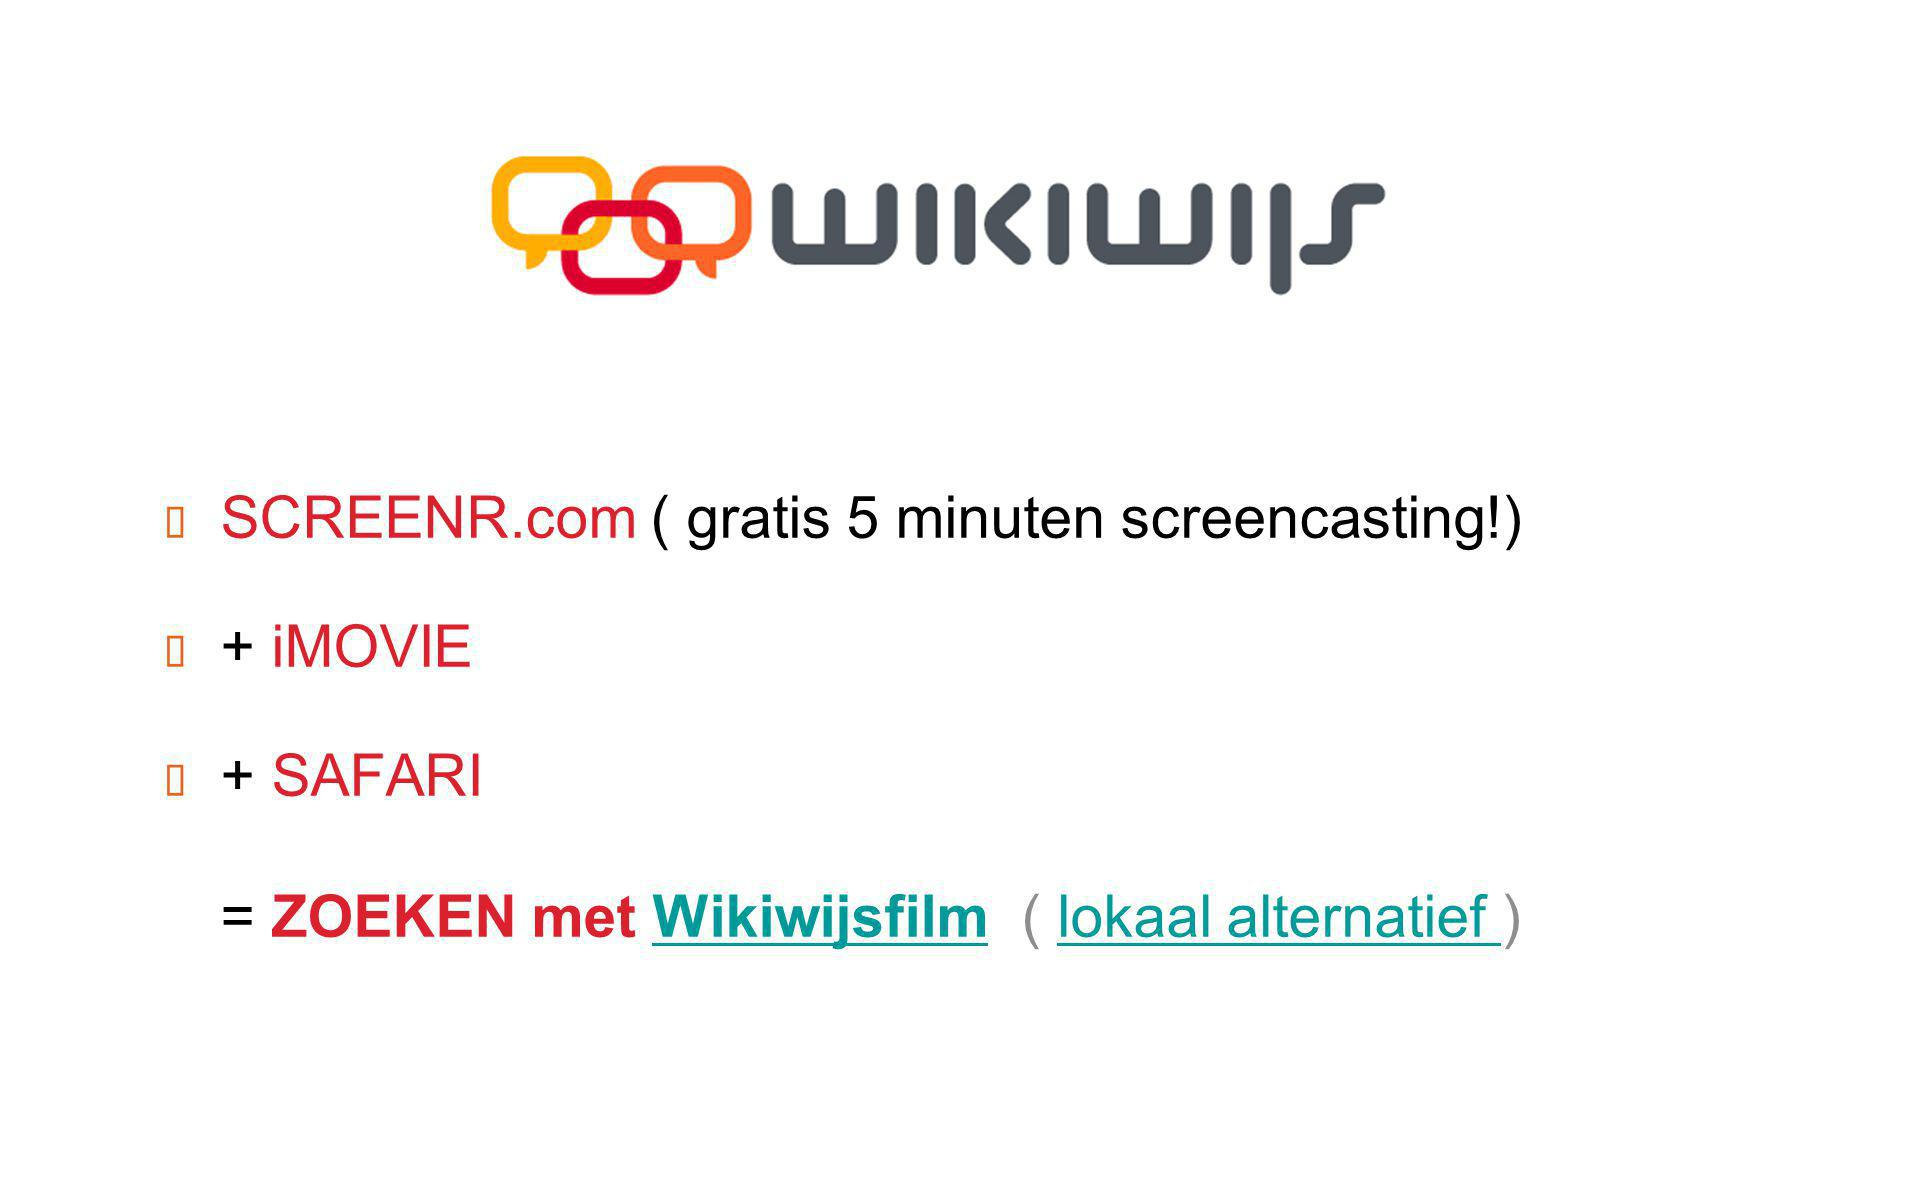 SCREENR.com ( gratis 5 minuten screencasting!)